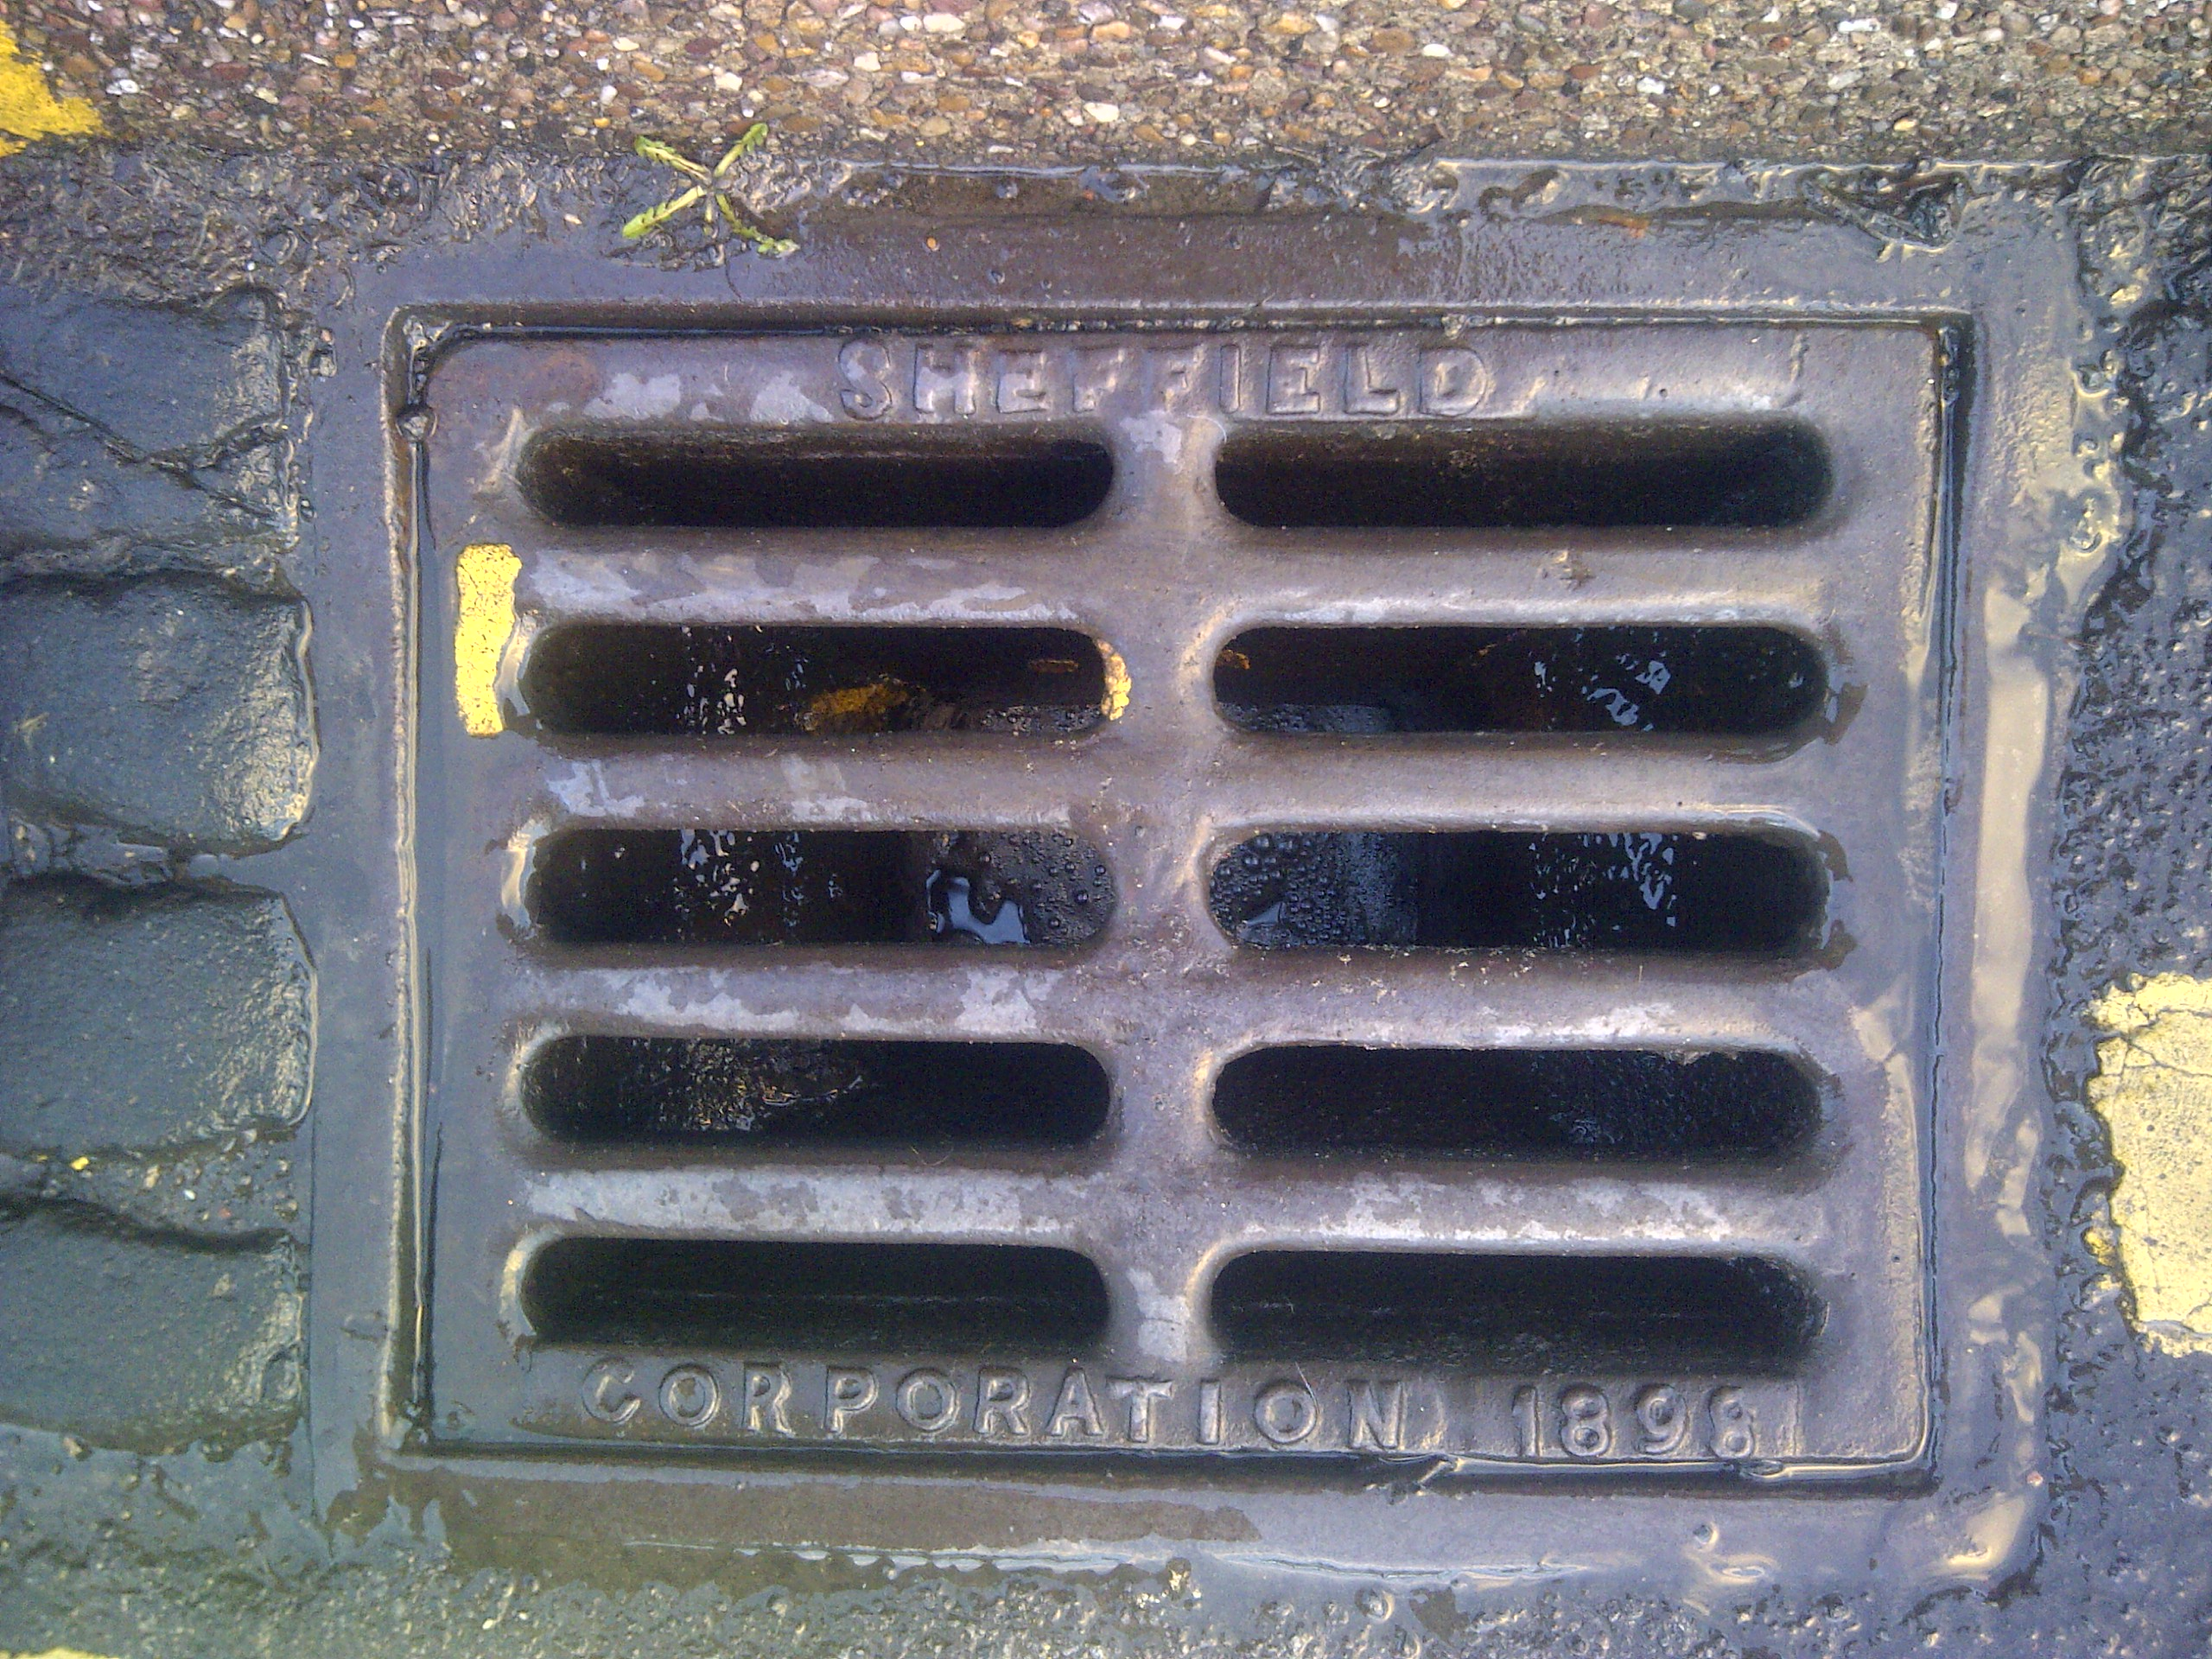 Sheffield Corporation 1898 drain at Commonside.